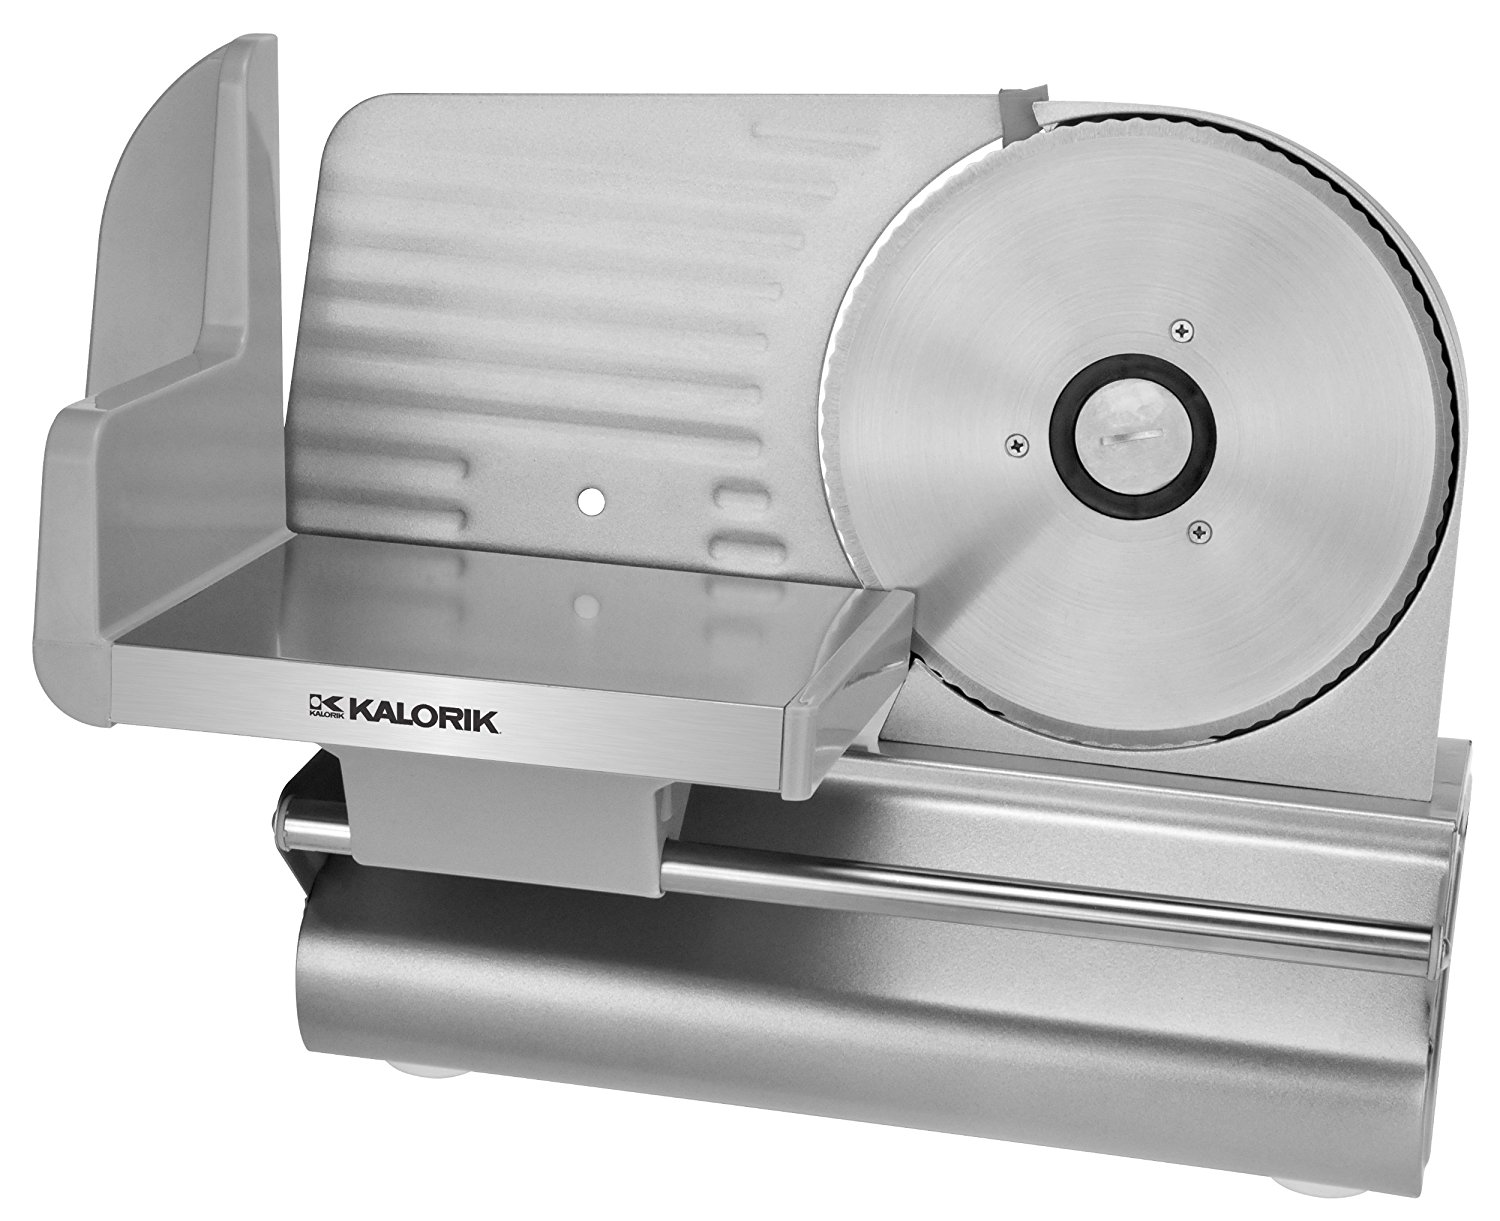 Kalorik Electric Food Slicer